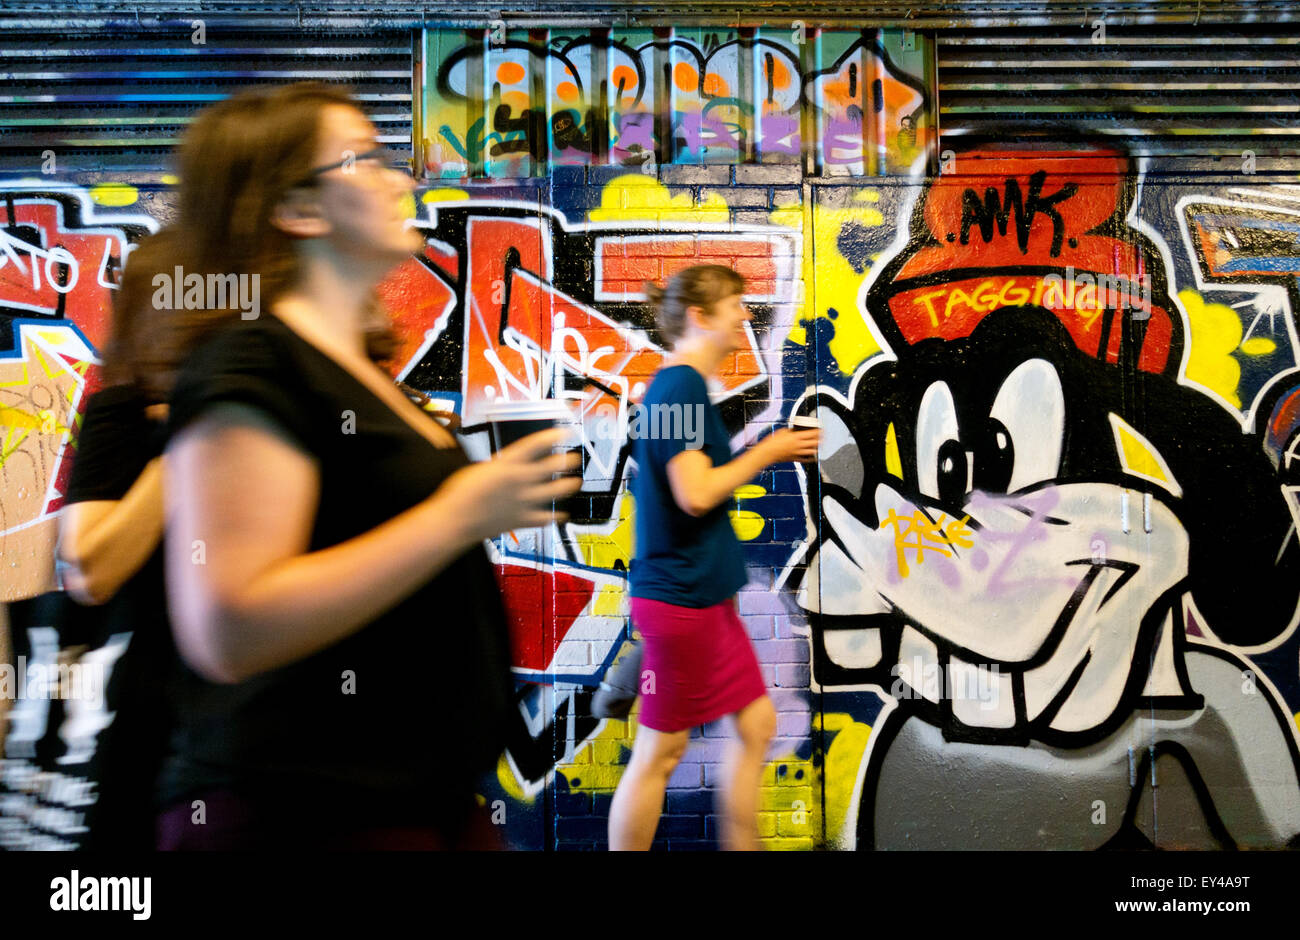 people-walking-past-the-graffiti-on-the-